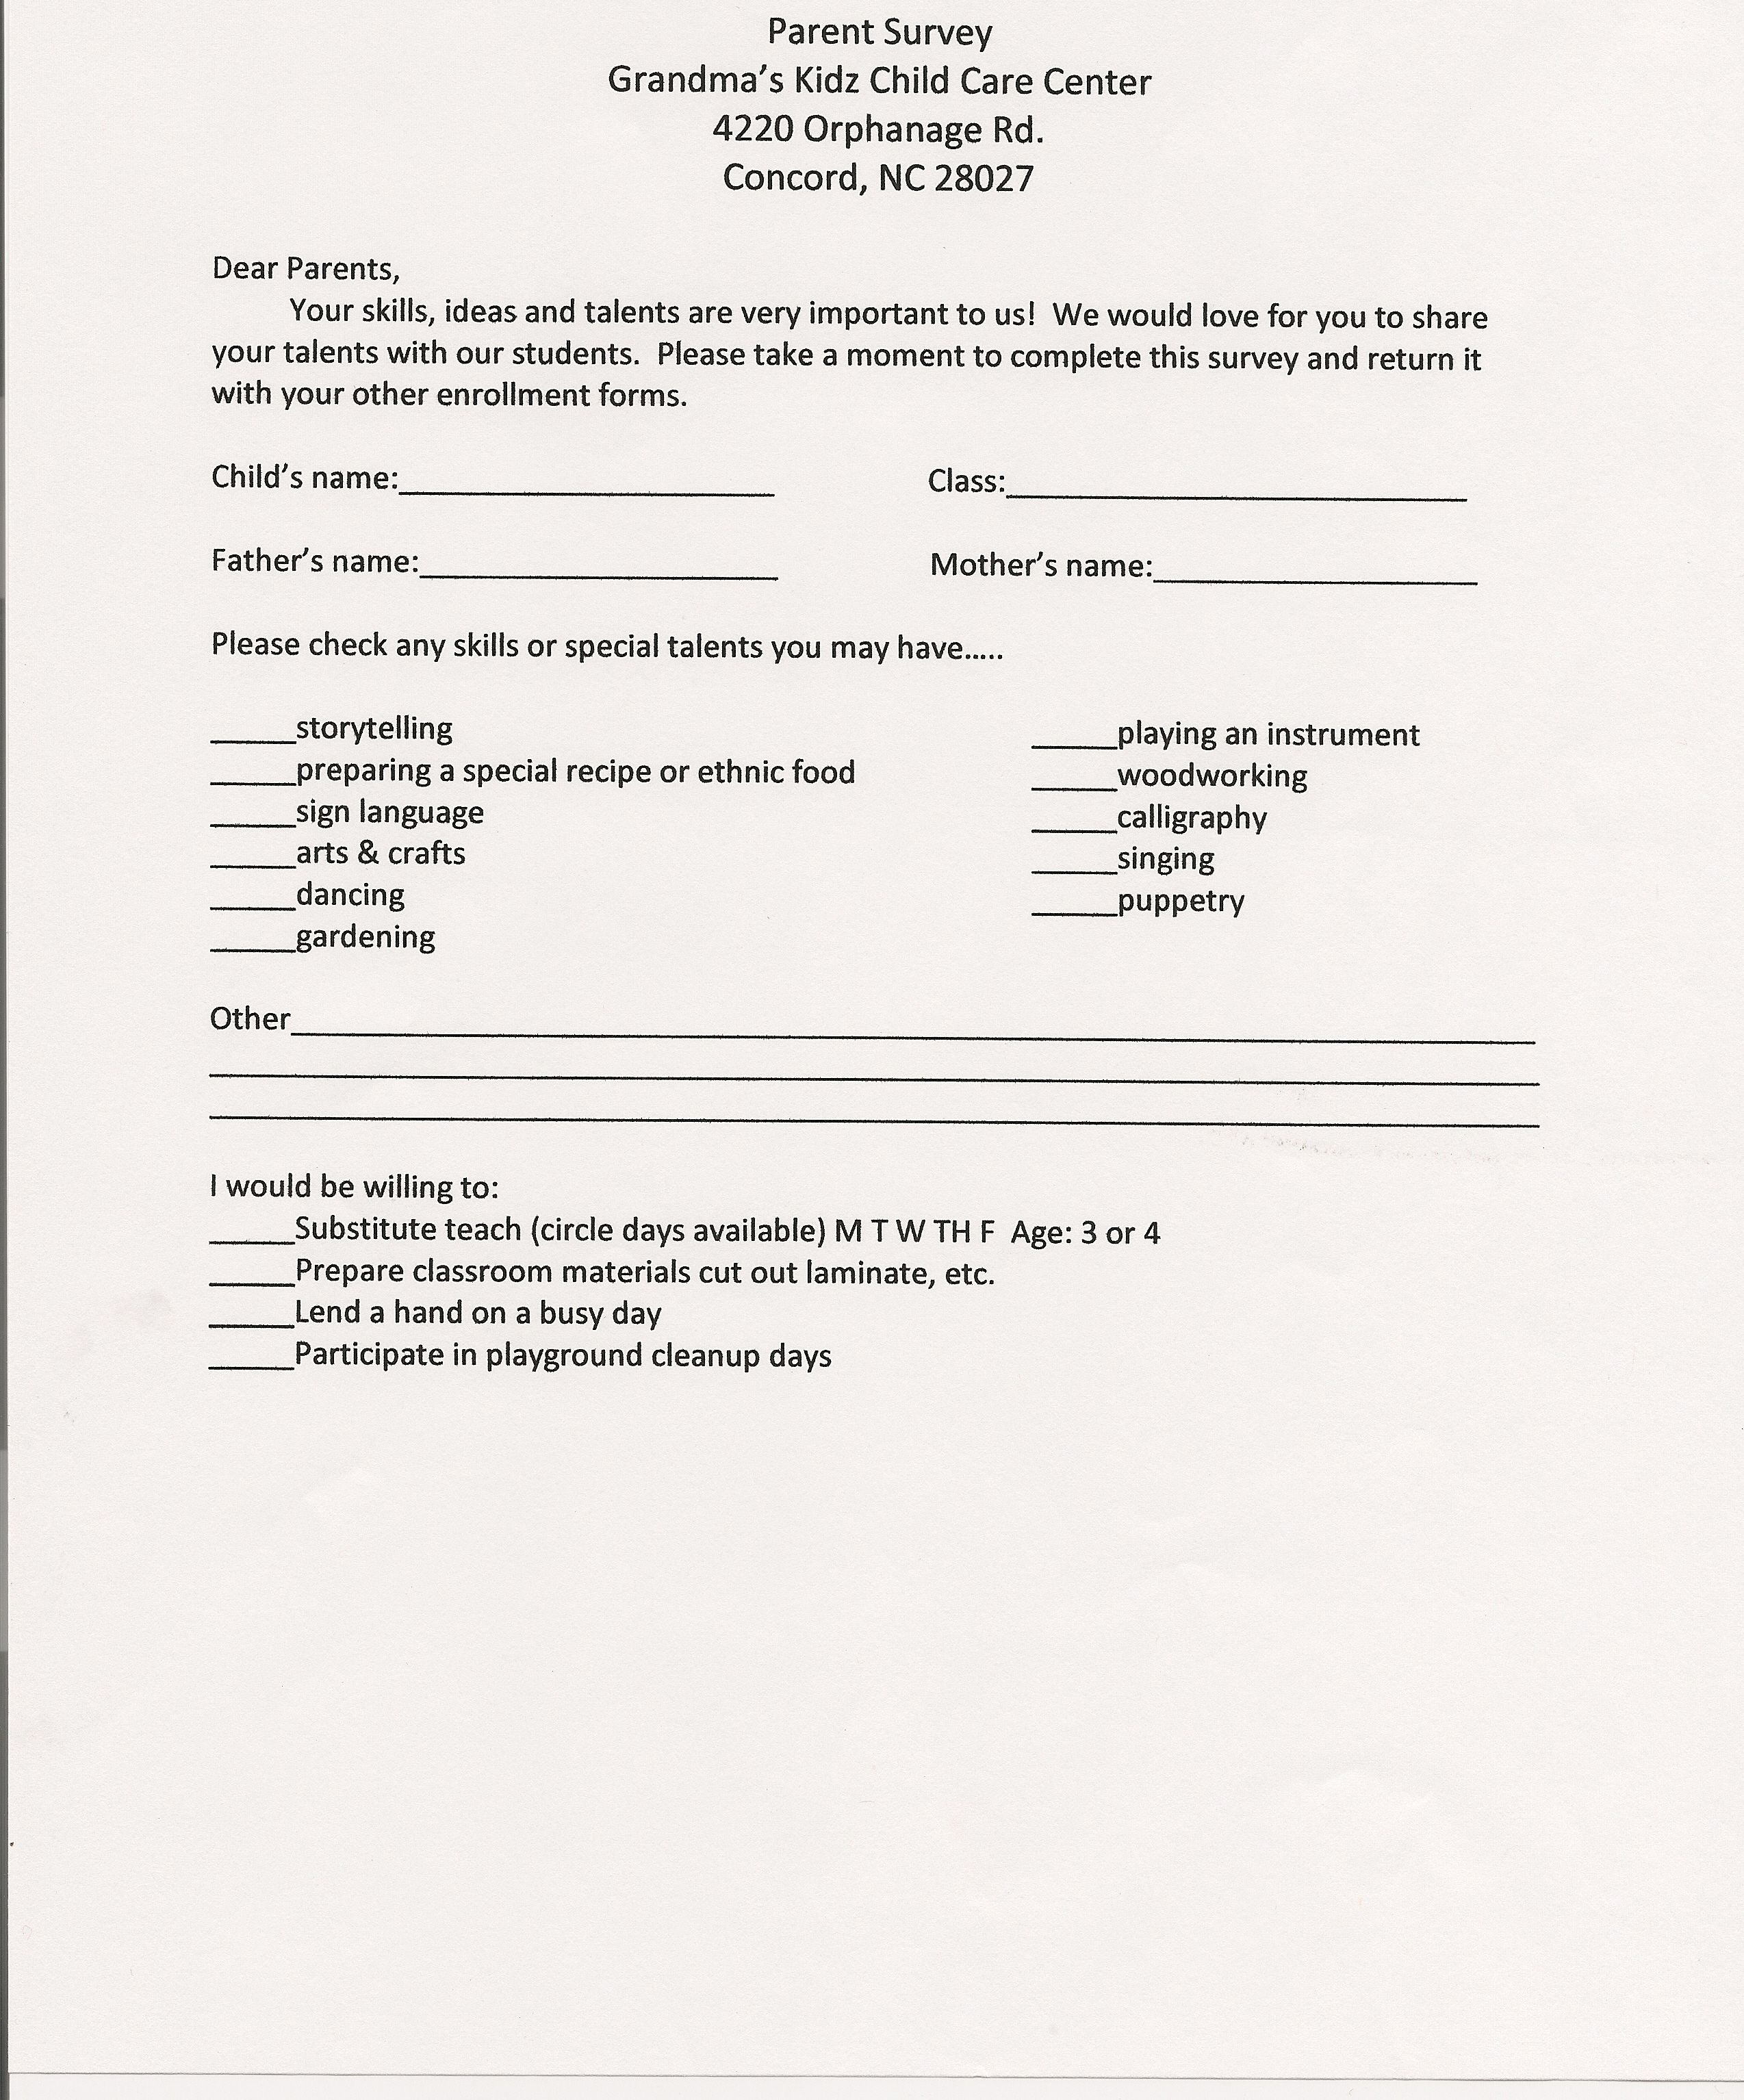 Parent Survey Forms Printable Prek  Preschool  Daycare  Child